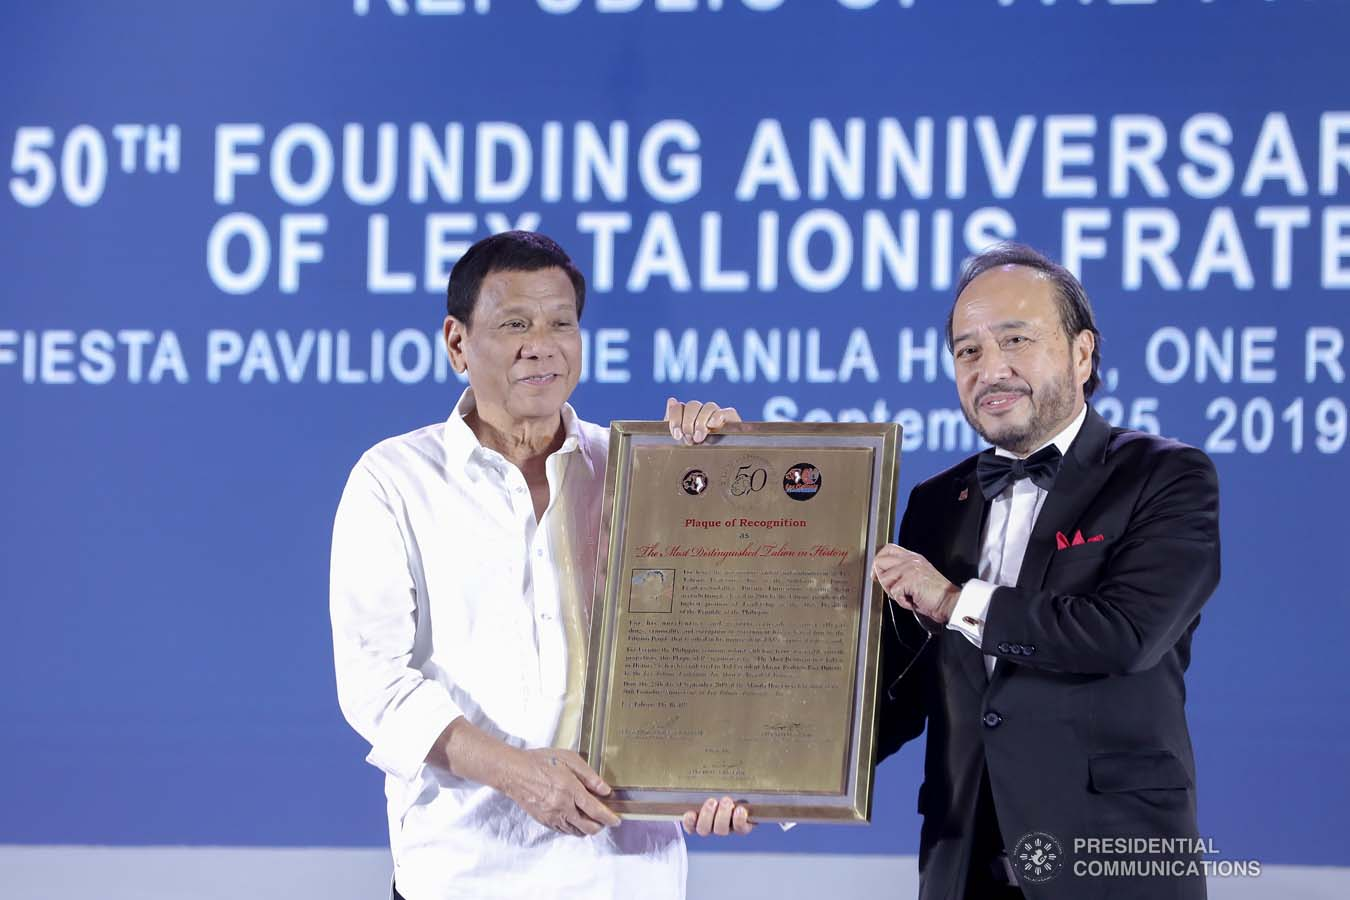 President Rodrigo Roa Duterte receives a plaque of recognition during the 50th Founding Anniversary Celebration of Lex Talionis Fraternitas Inc. at The Manila Hotel on September 25, 2019. ALFRED FRIAS/PRESIDENTIAL PHOTO